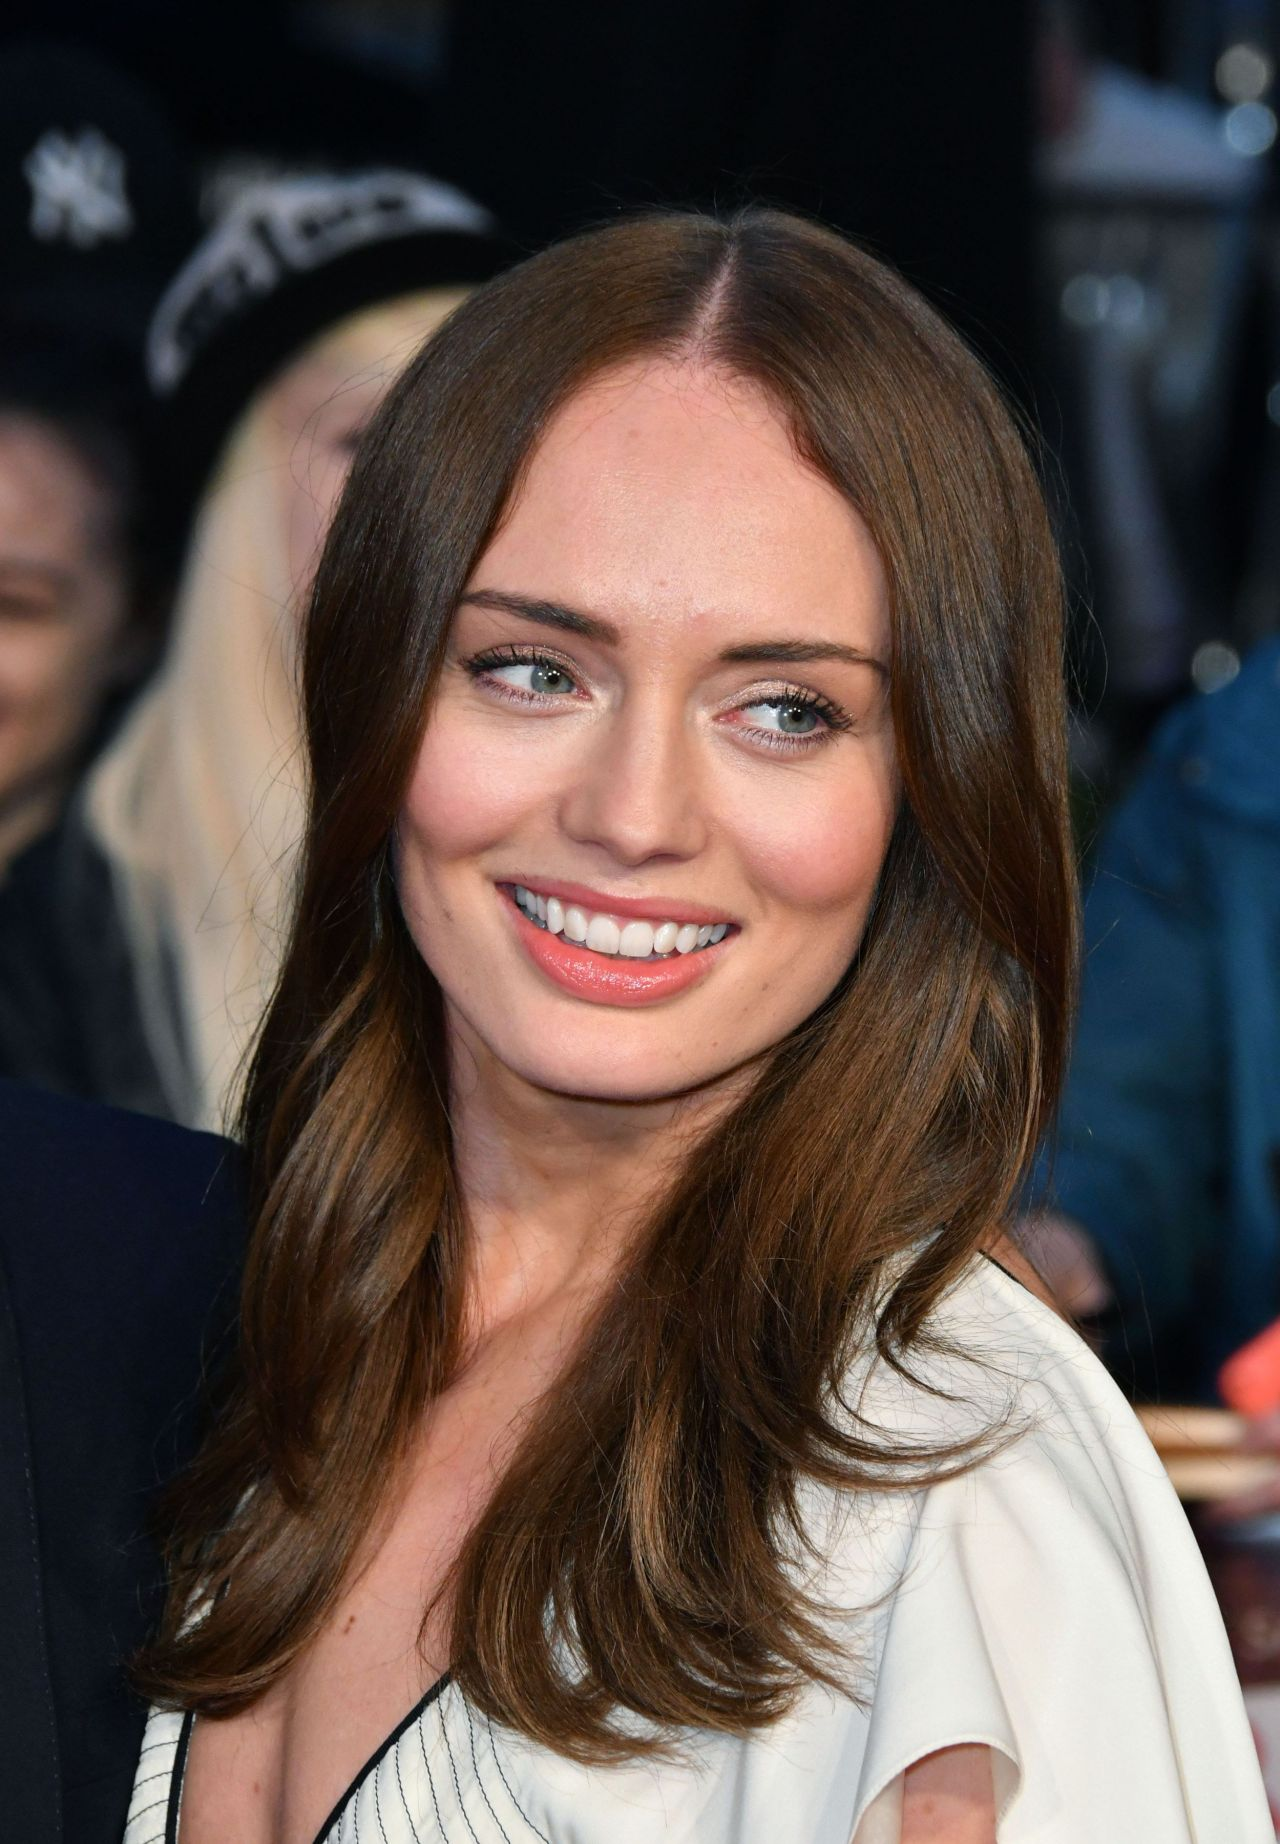 Laura Haddock nudes (21 photos), foto Bikini, YouTube, cleavage 2020